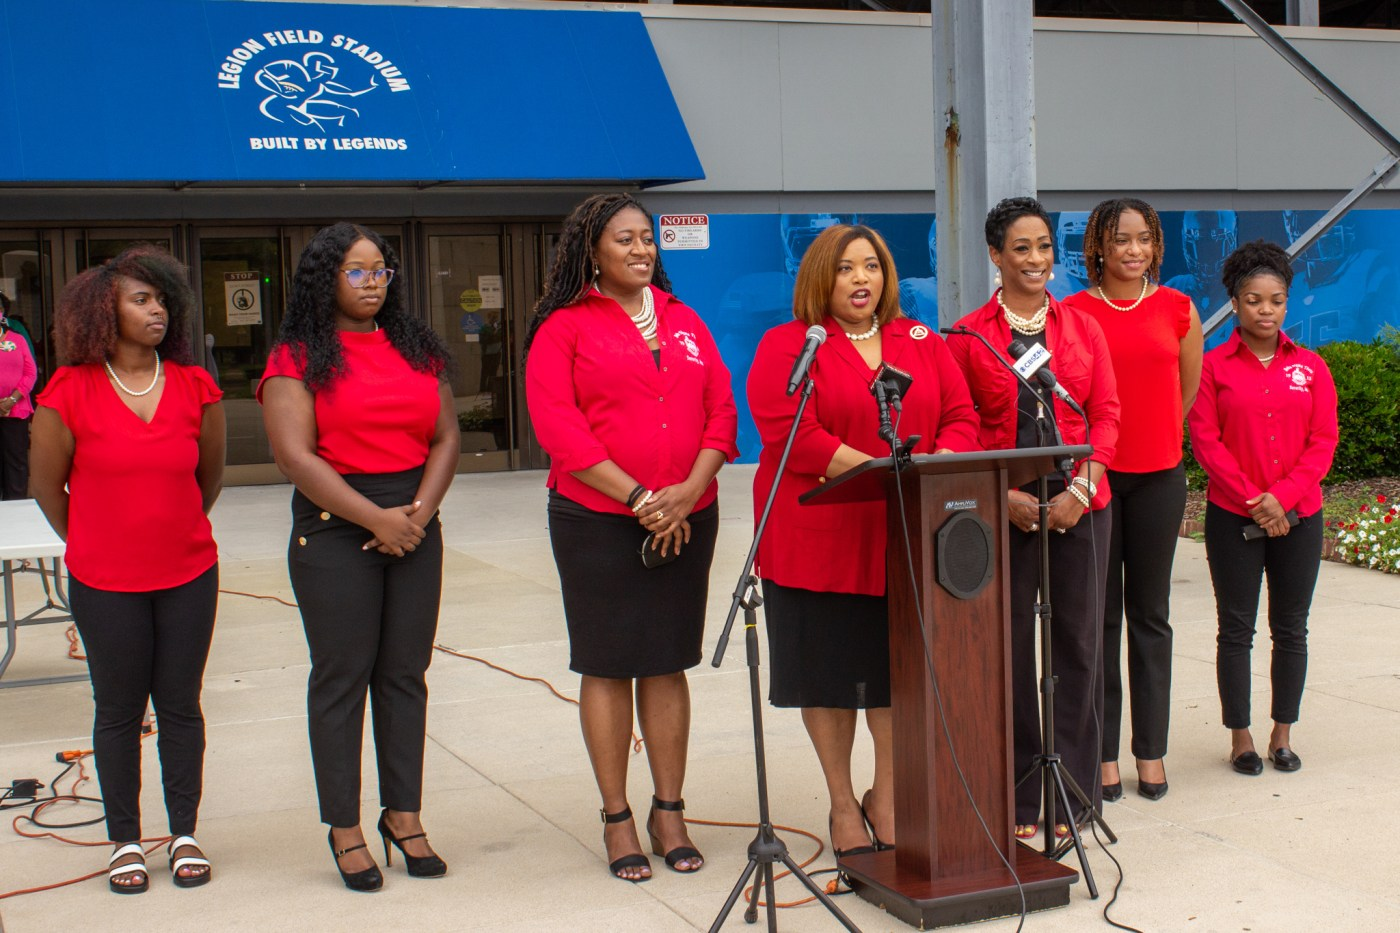 Members of the Delta Sigma Theta sorority urged for everyone to get vaccinated. Photo via Libby Foster for Bham Now